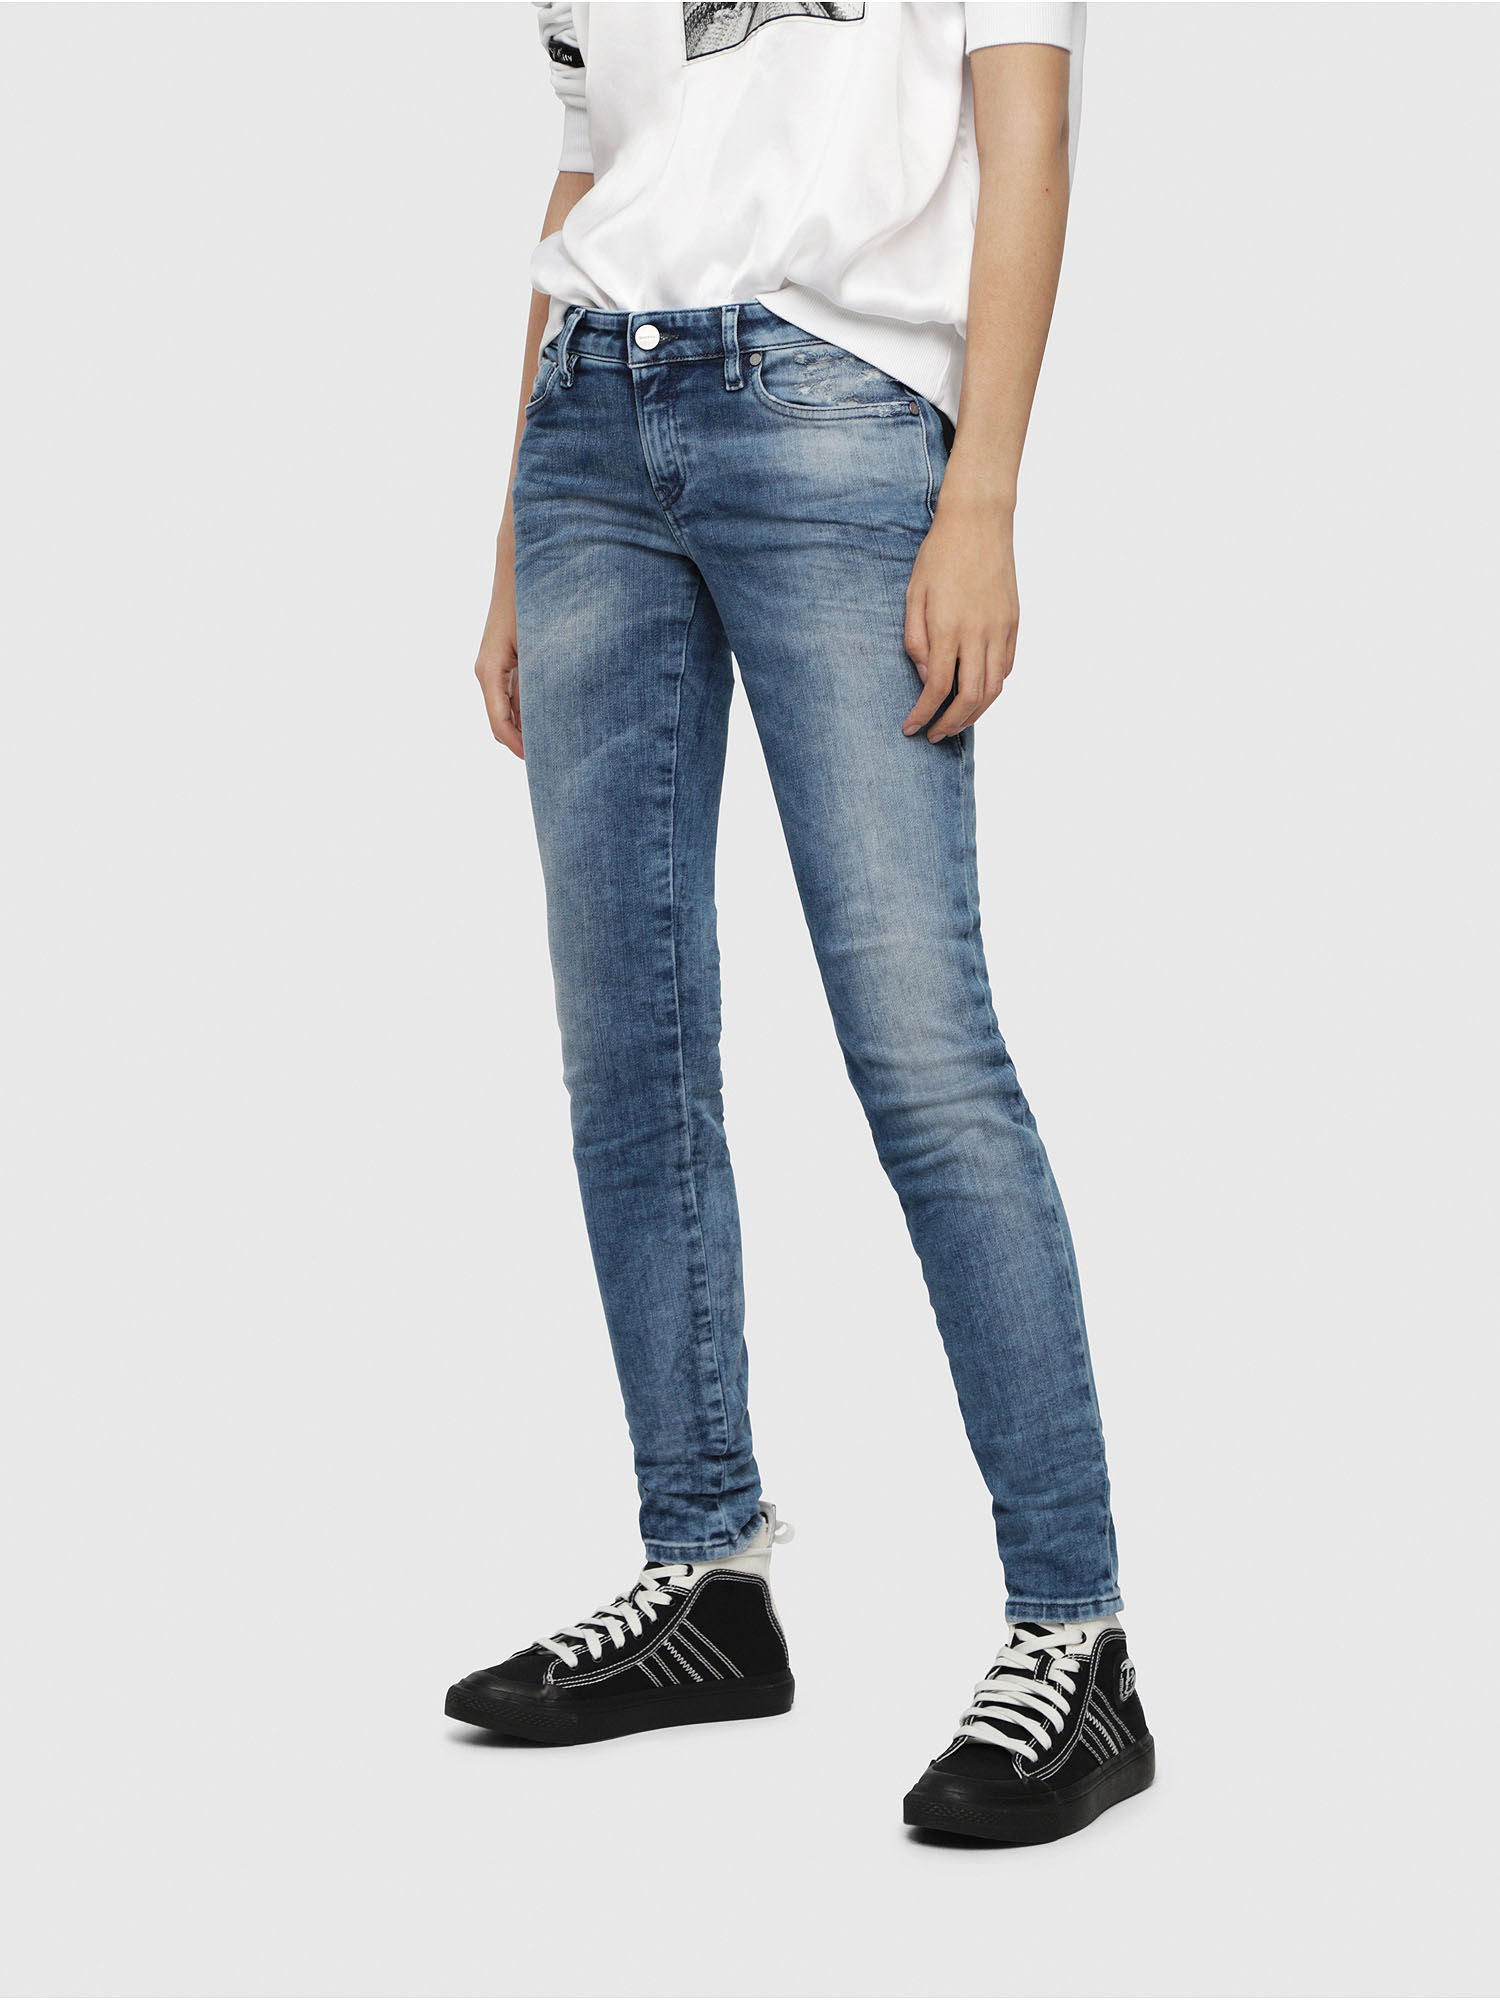 Diesel - Gracey JoggJeans 080AS,  - Jeans - Image 1